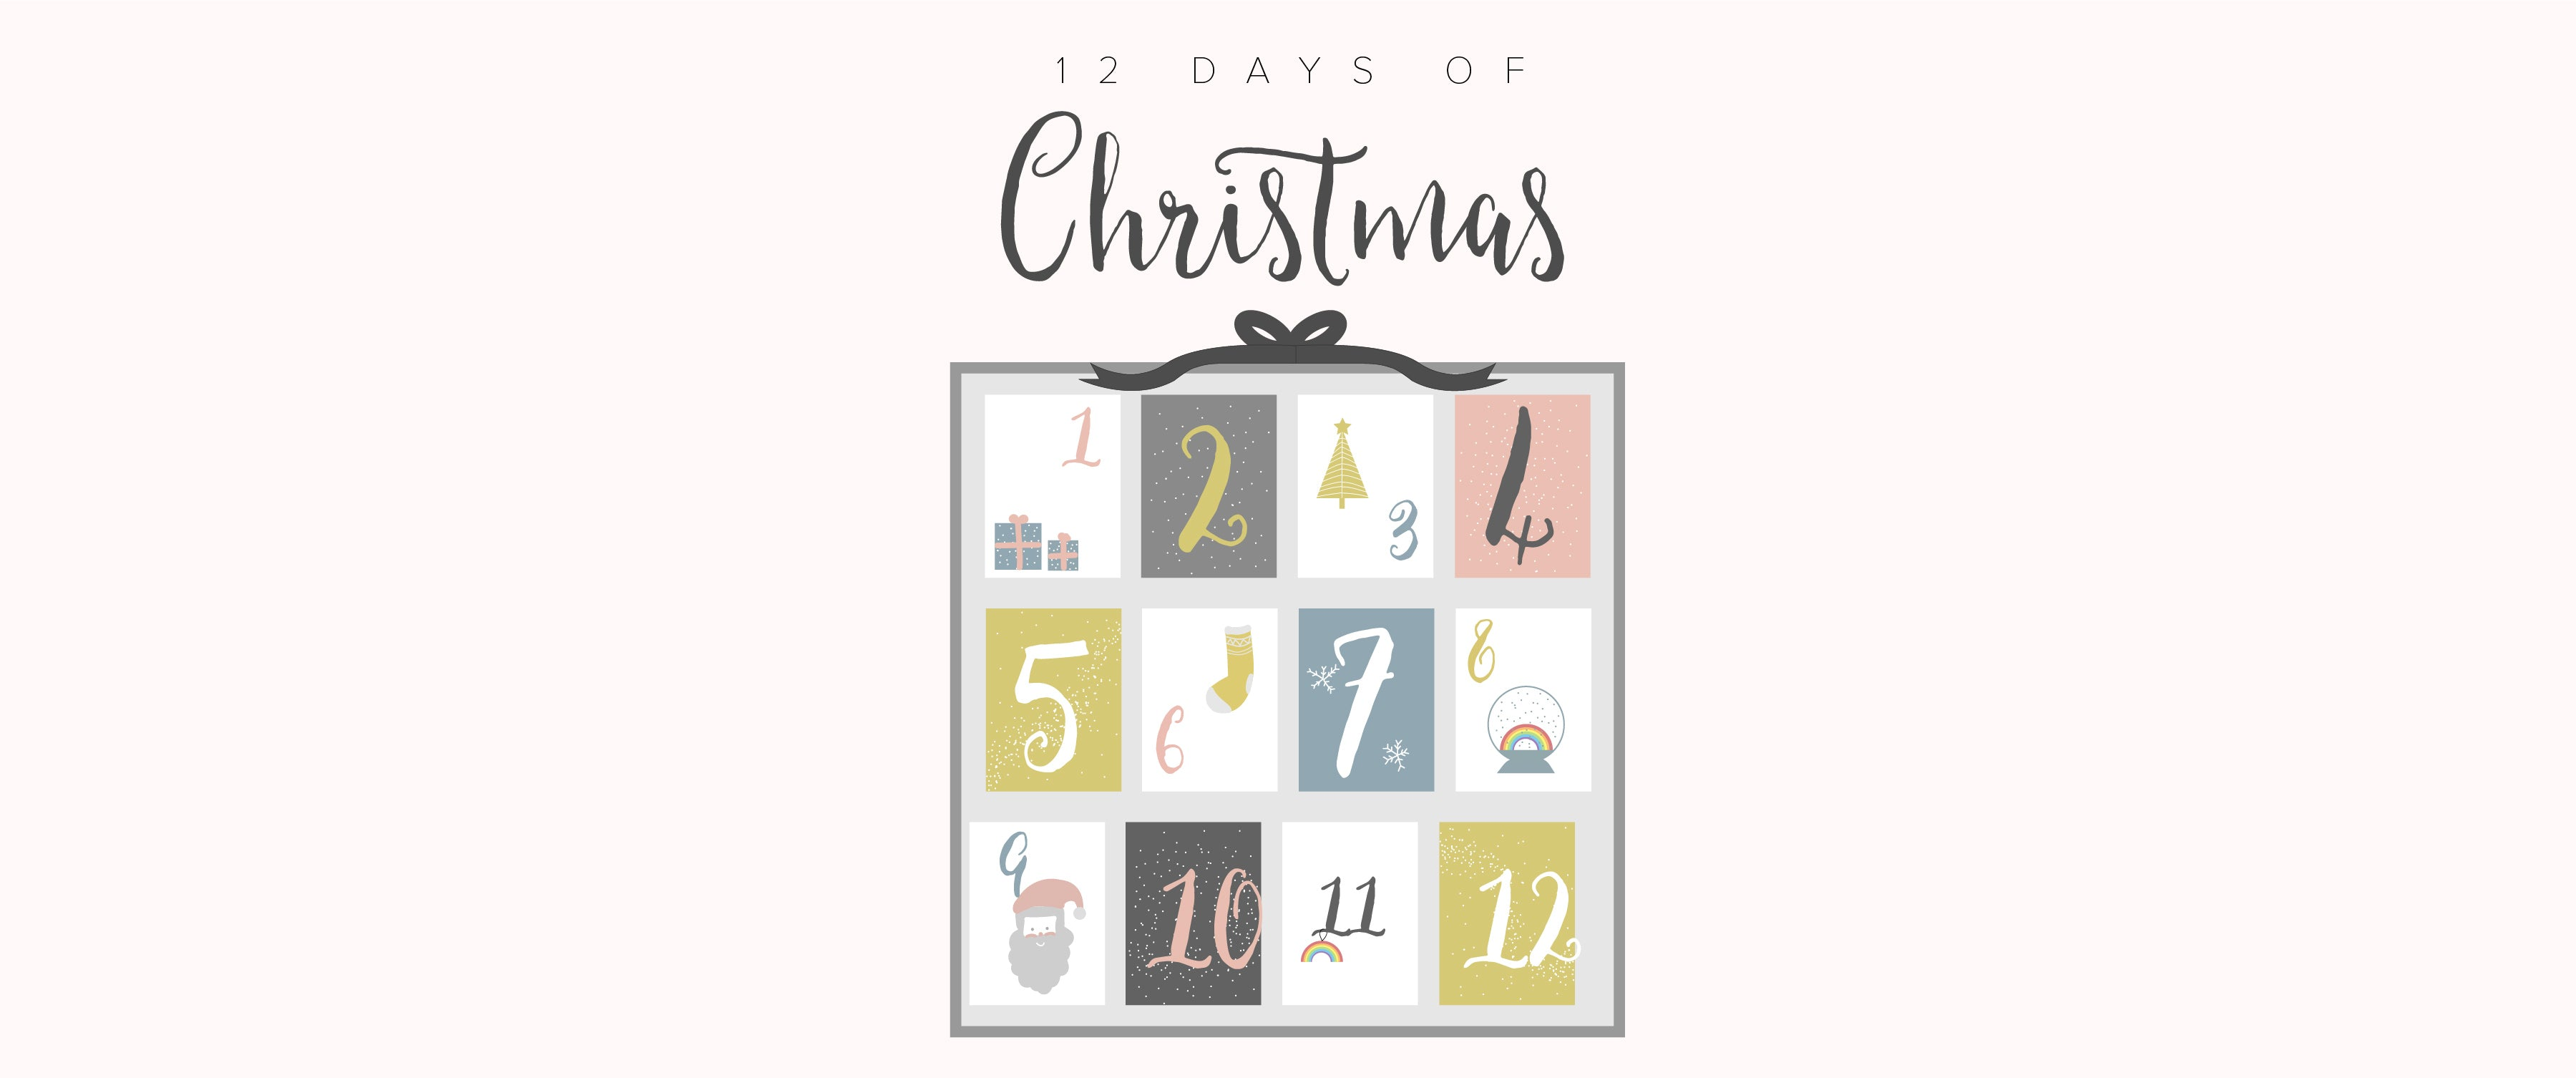 Pleiades 12 Days of Christmas calendar